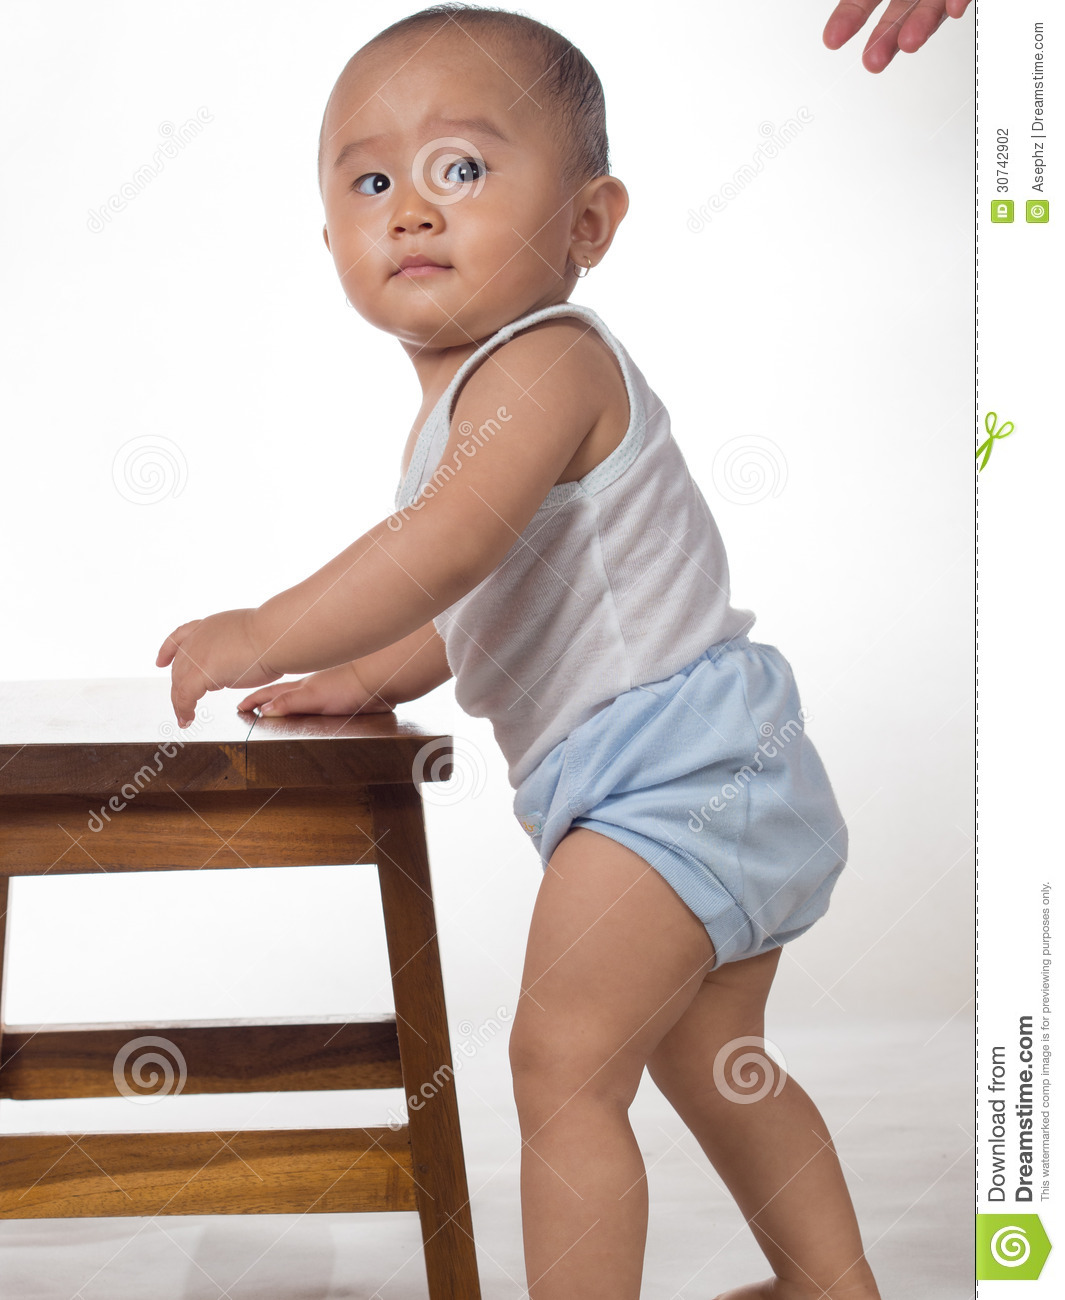 Baby Learning To Stand Stock Photography Image 30742902